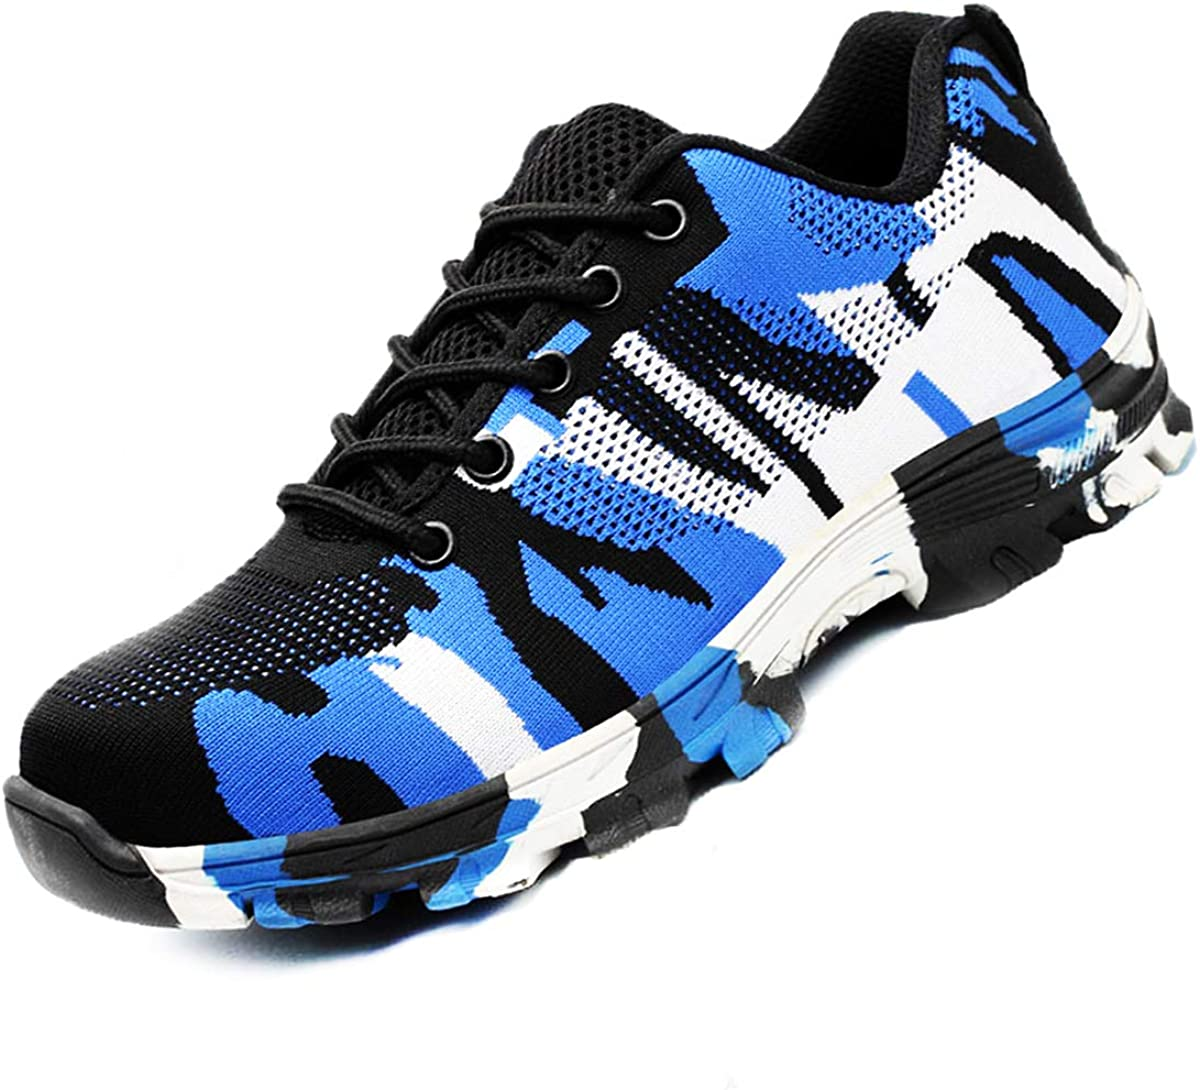 DoGeek Safety Shoes Breathable Work Trainers for Men and Women Durable and Lightweight